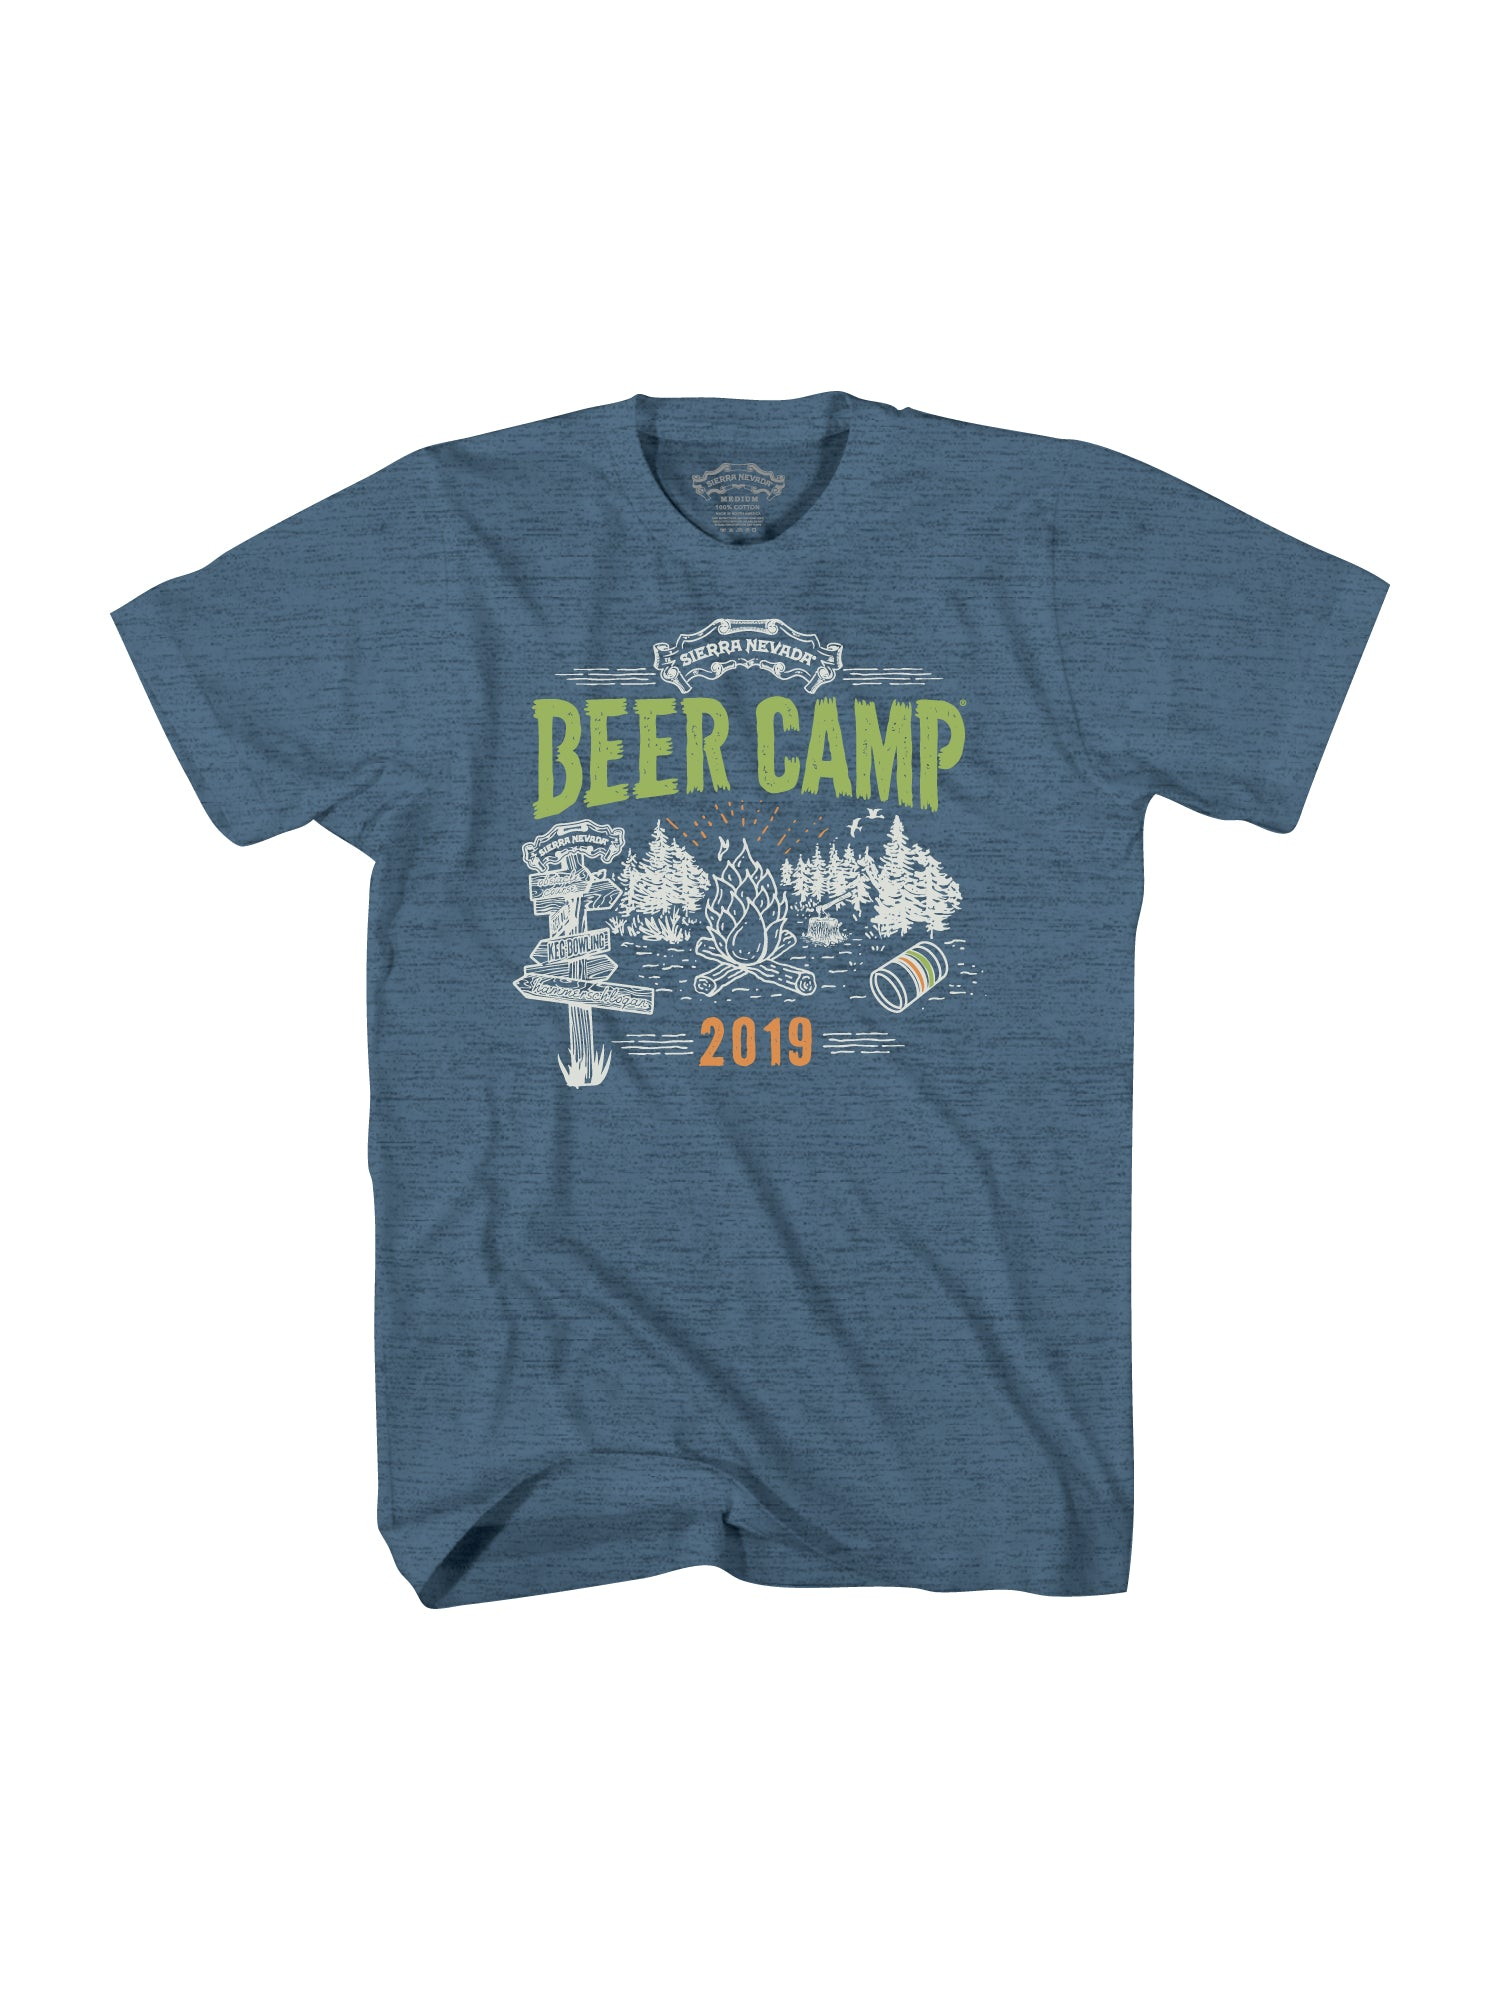 BEER CAMP S/S TSHIRT- HEATHER BLUE - Anderson Bros Design and Supply